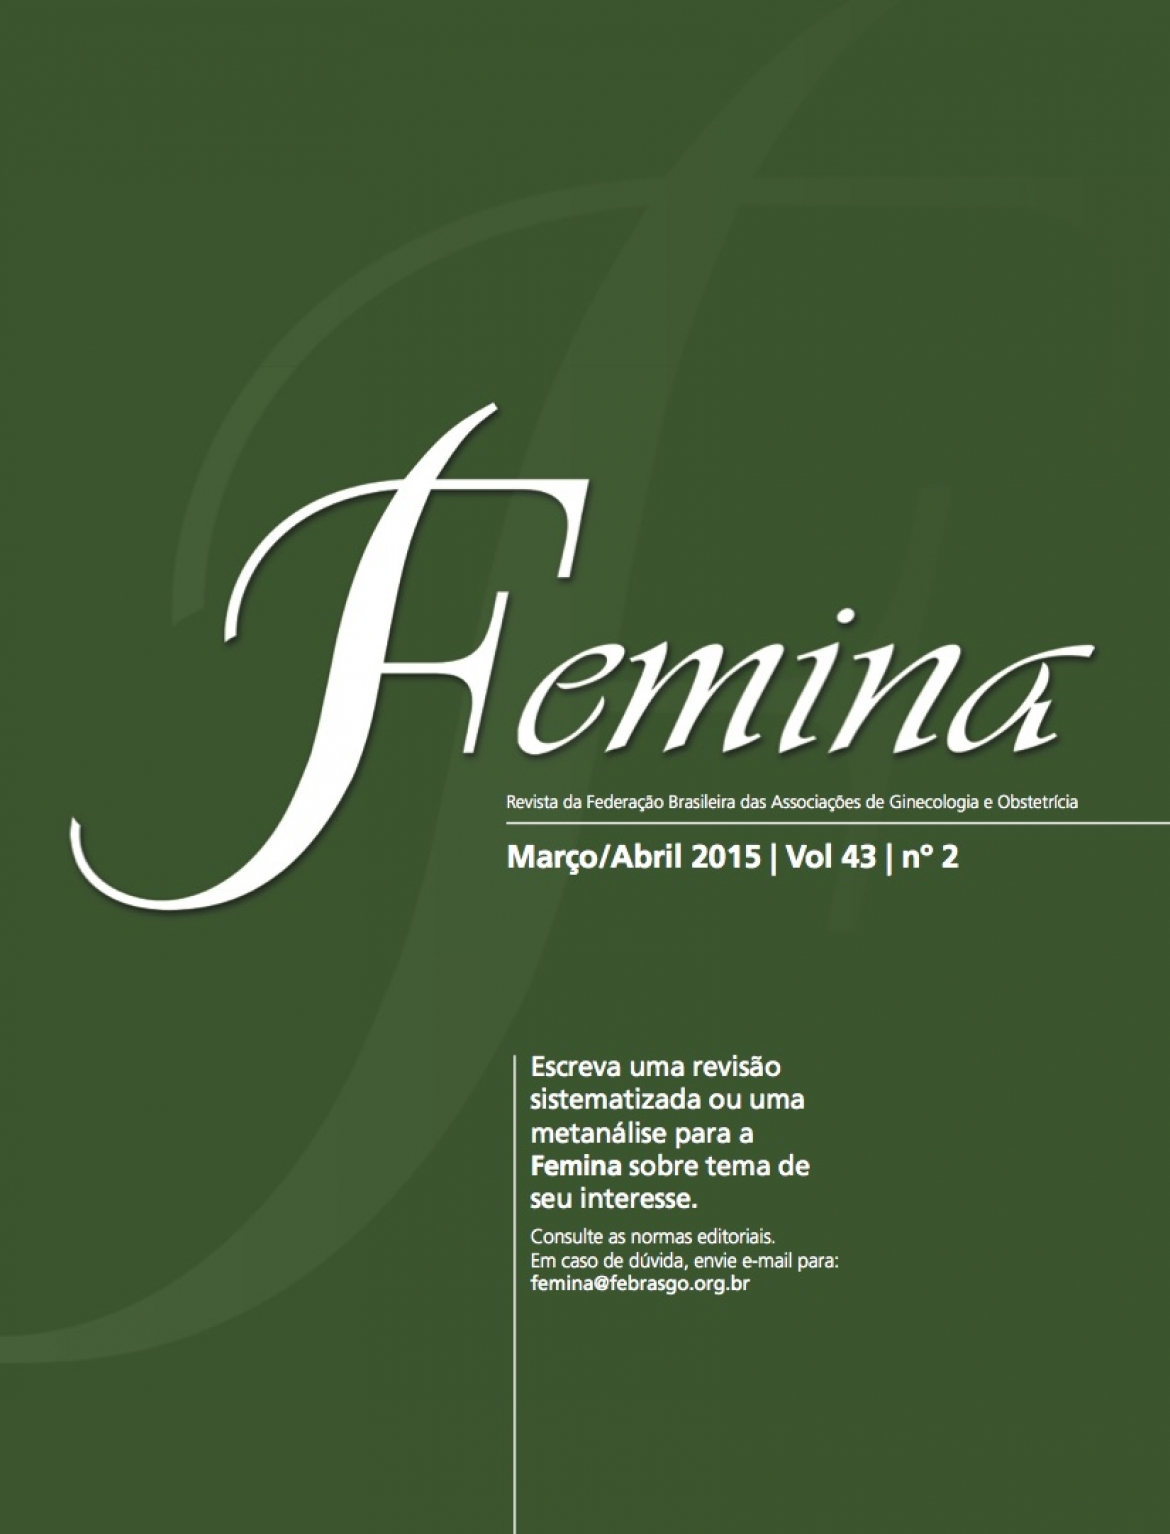 Revista Femina – 2015 | vol 43 | nº 2